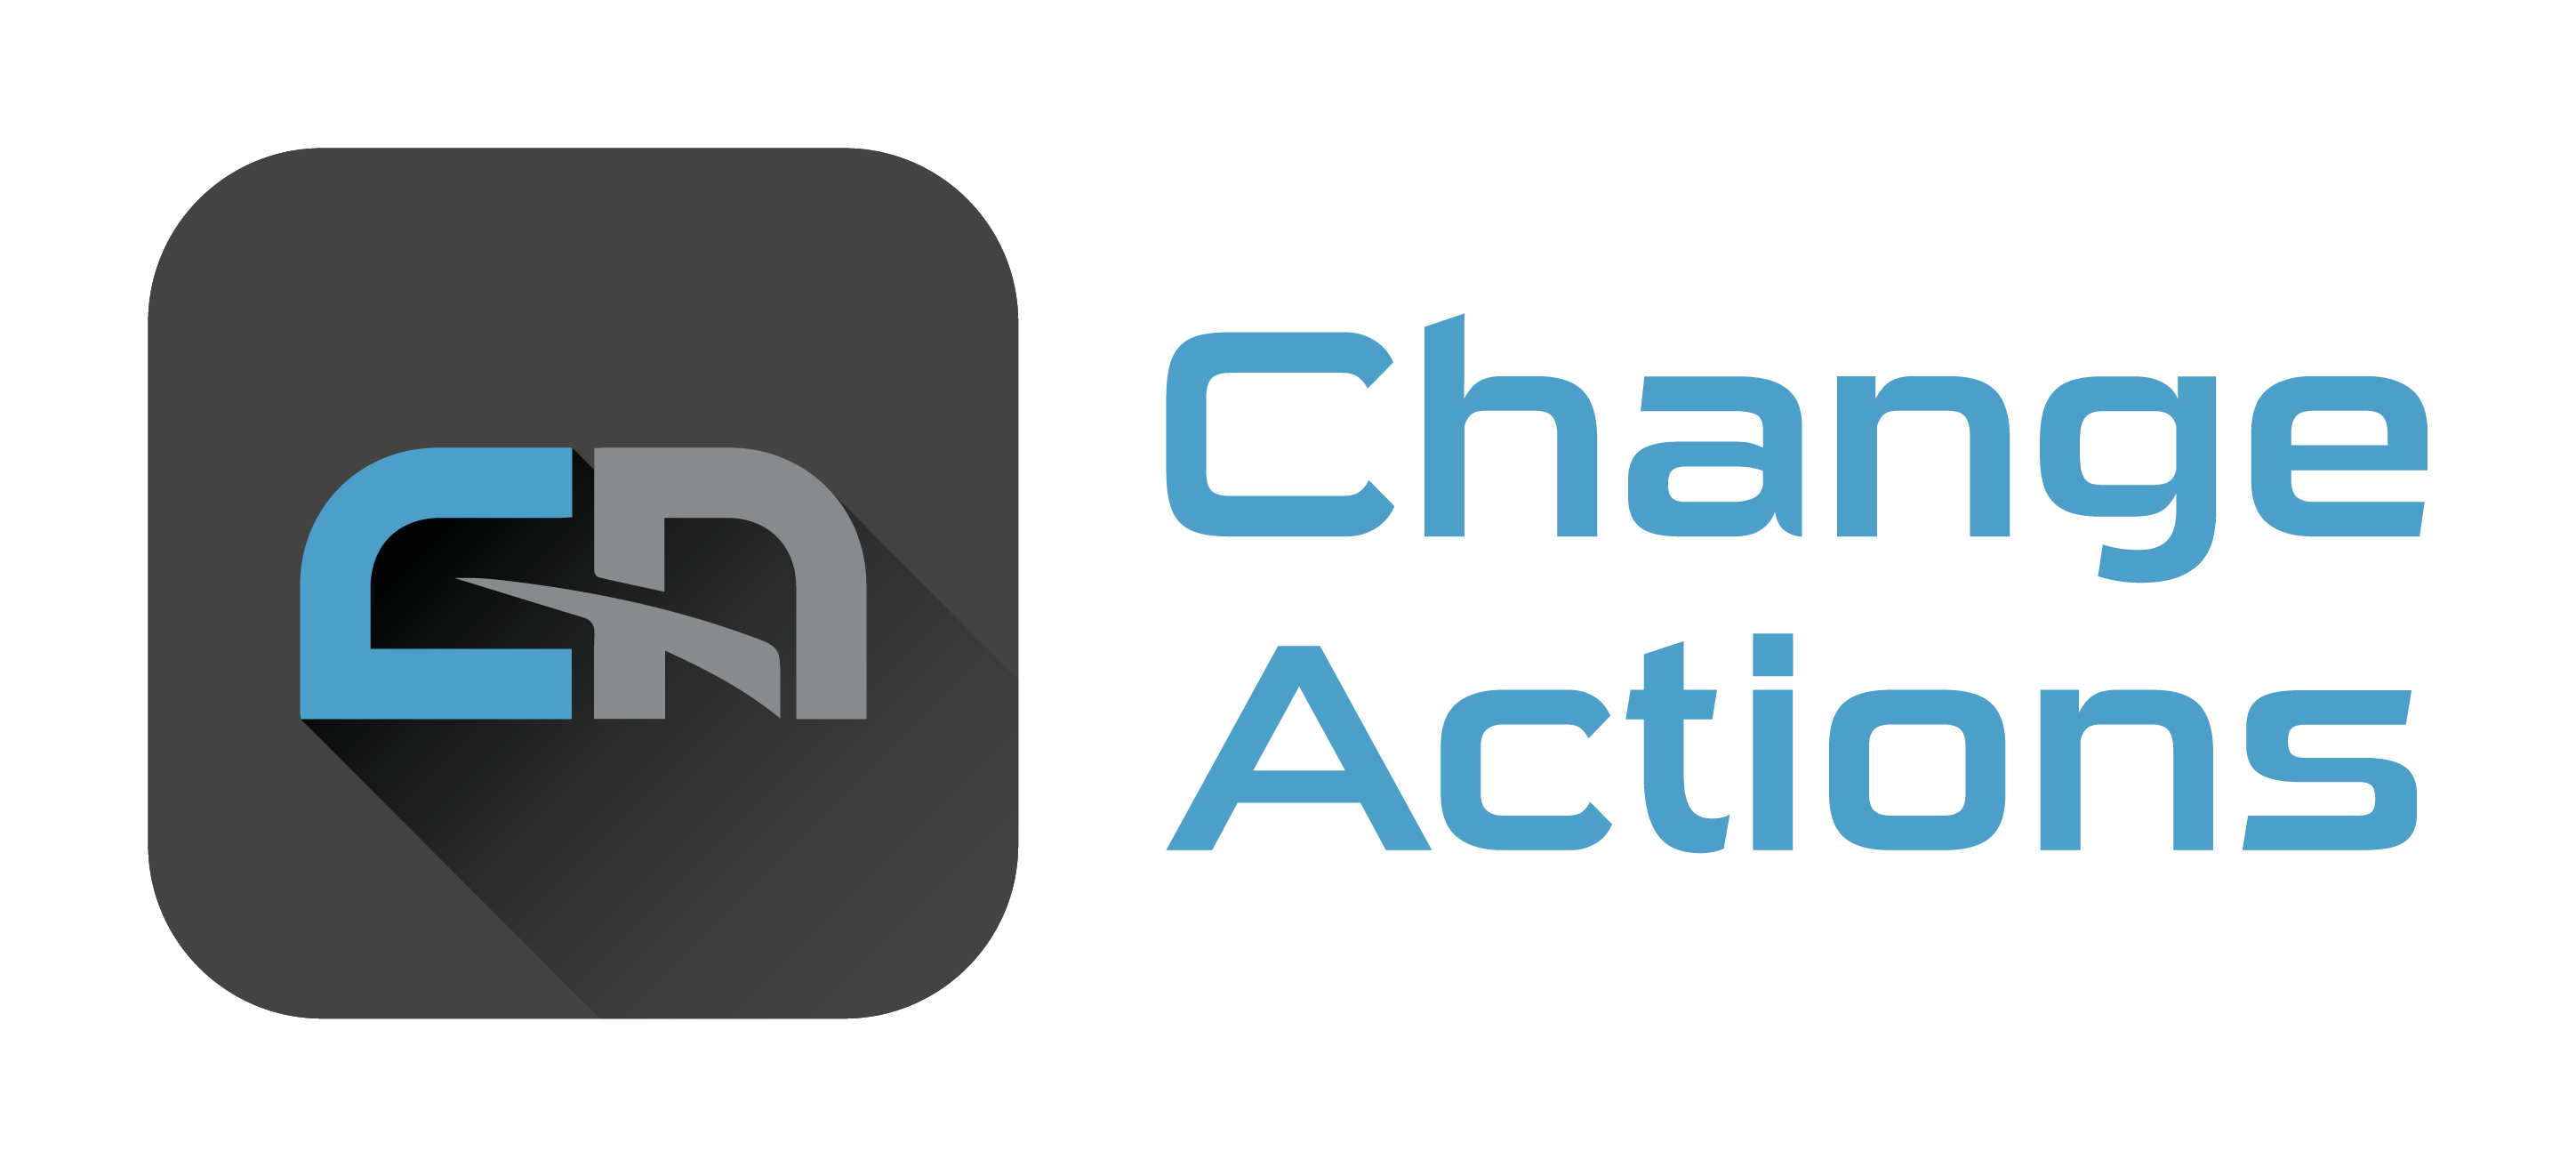 Change Actions Consulting